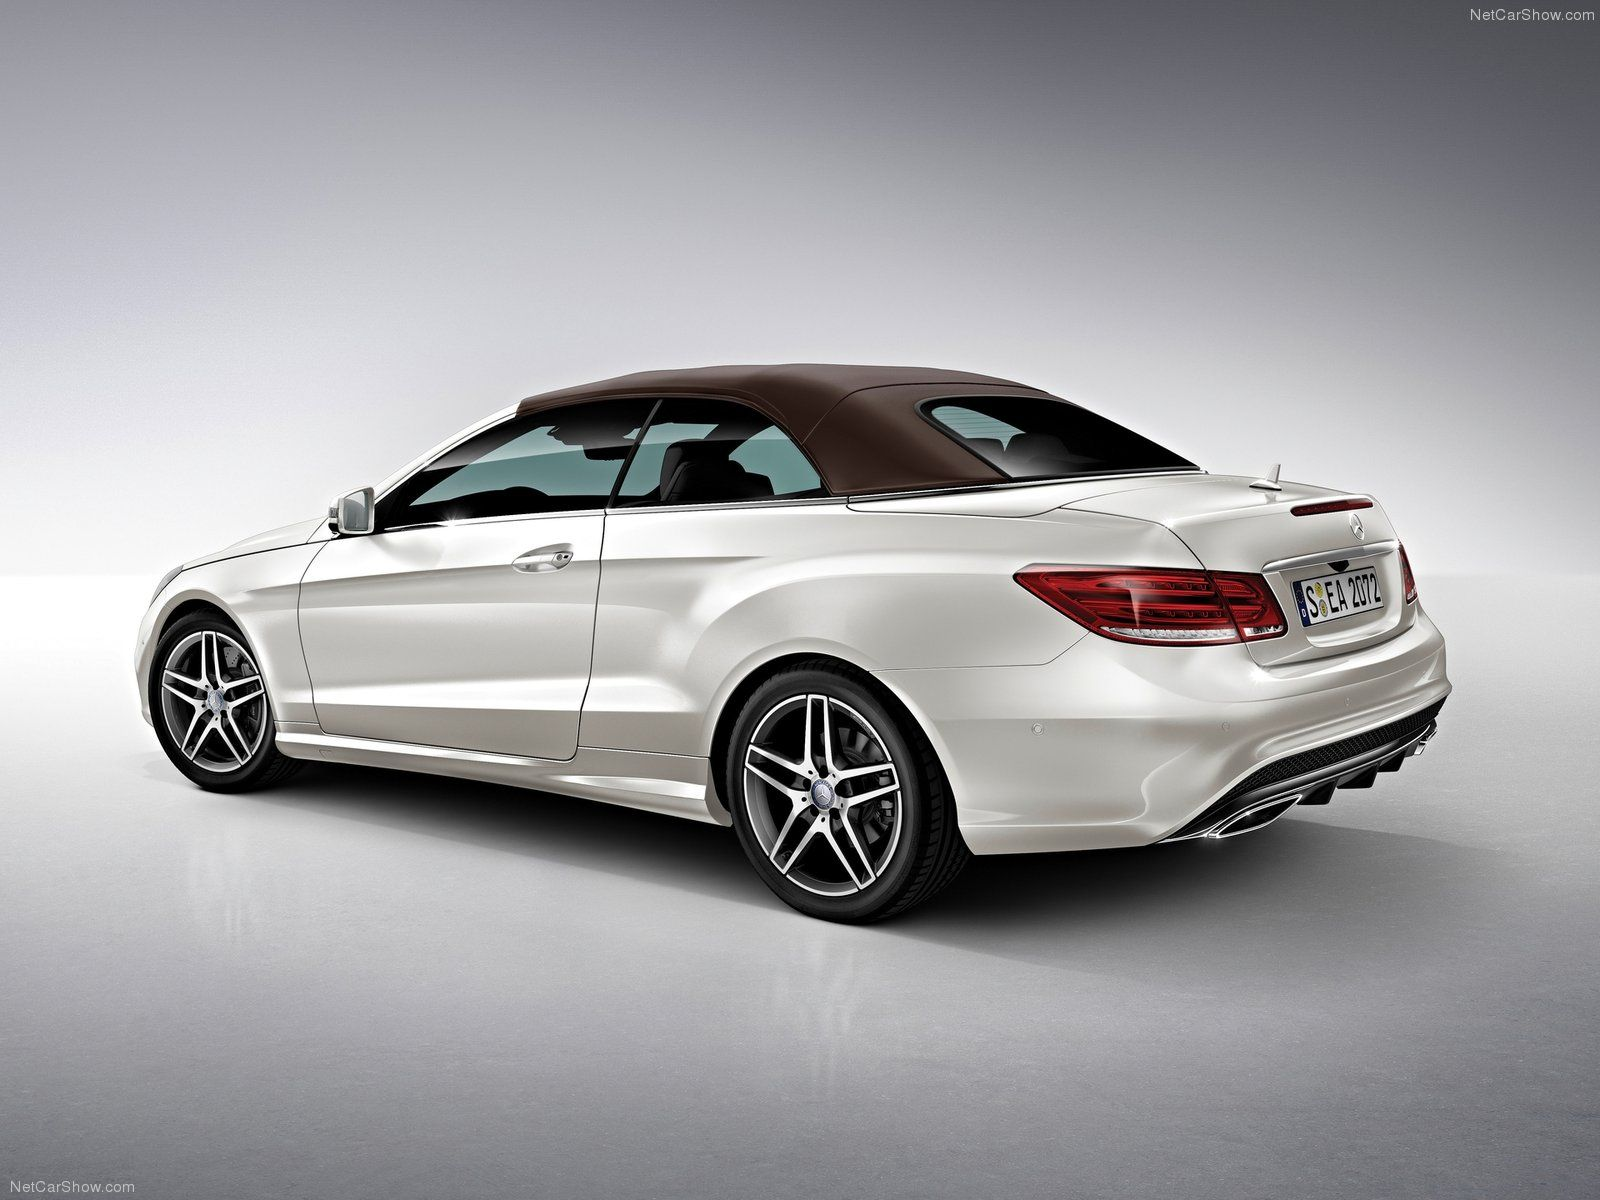 m introduce cabrio hybrid and introduces benz engine class mild coupe cabriolet convertible e mercedes news